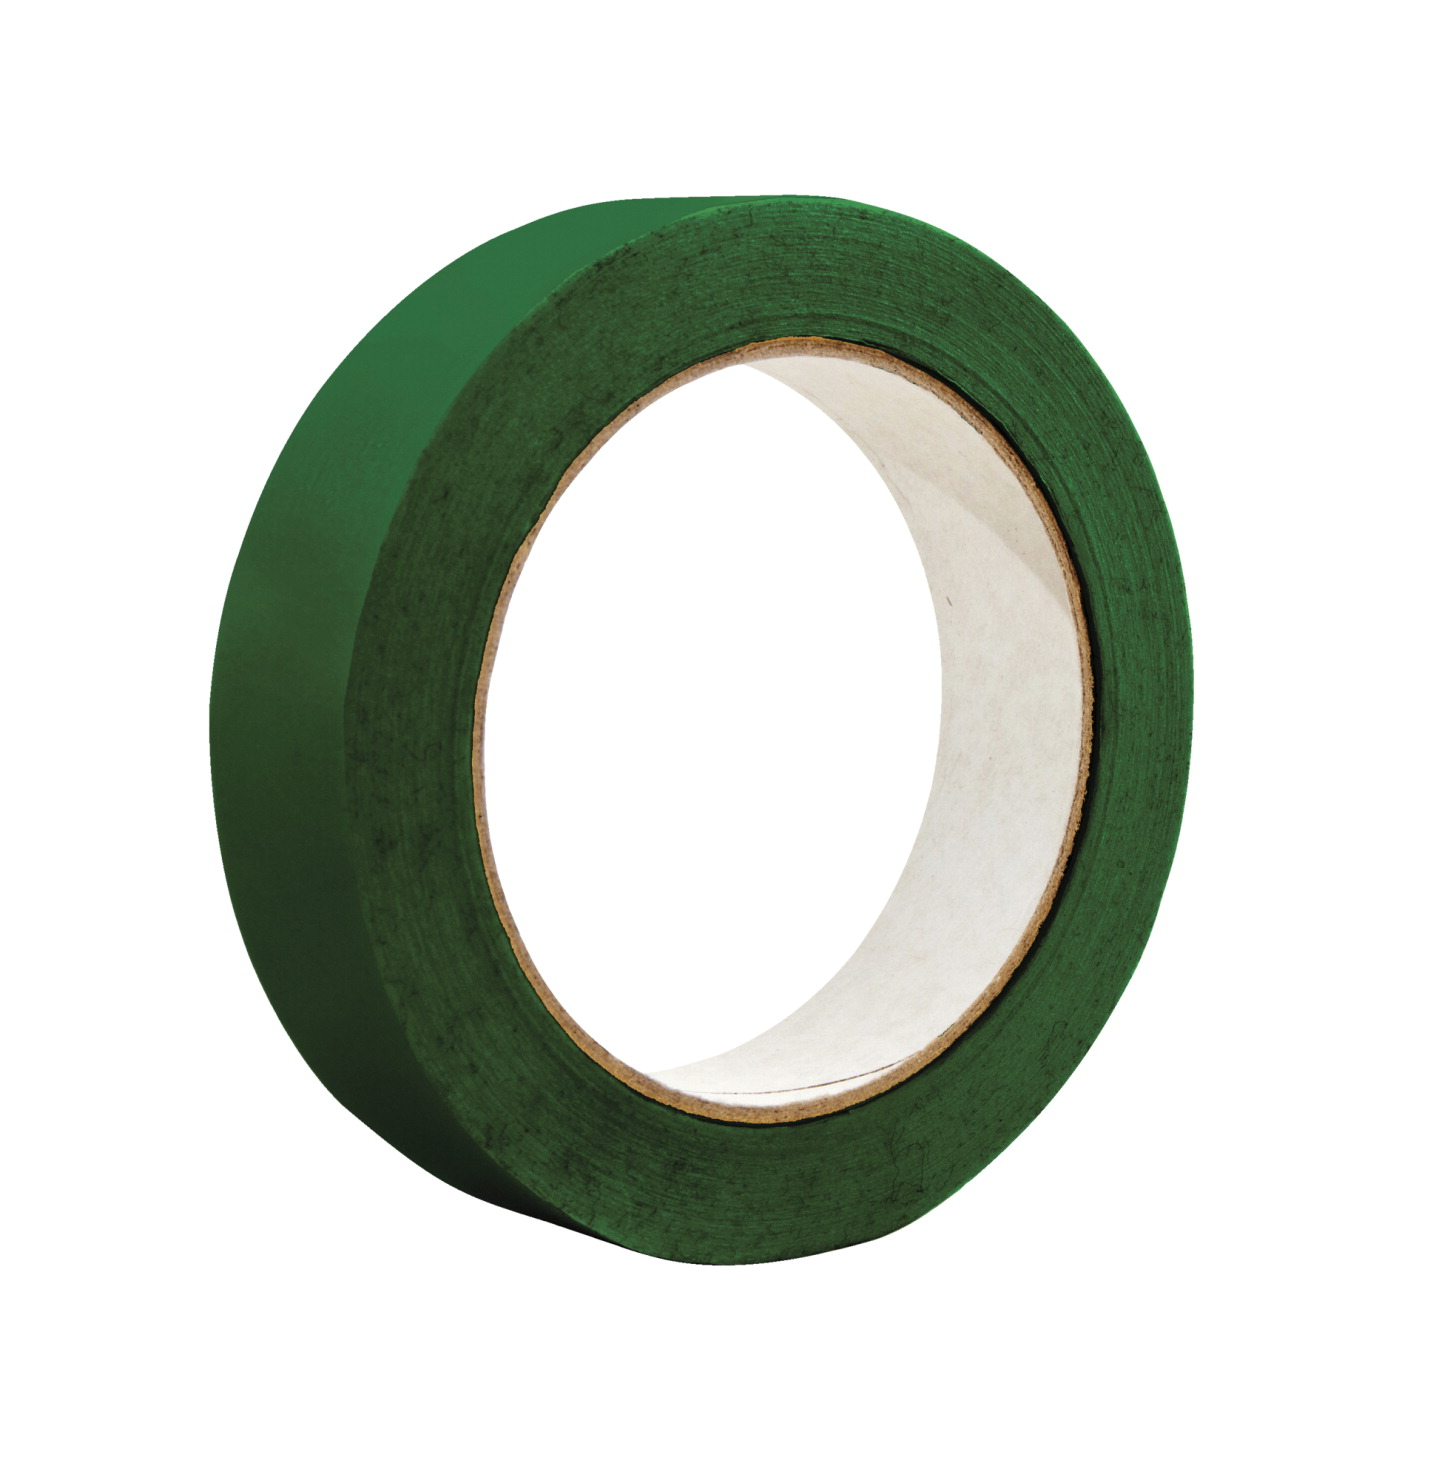 Creativity Street Masking Tape with 3 Inch Core, 1 Inch x 60 Yards, Green